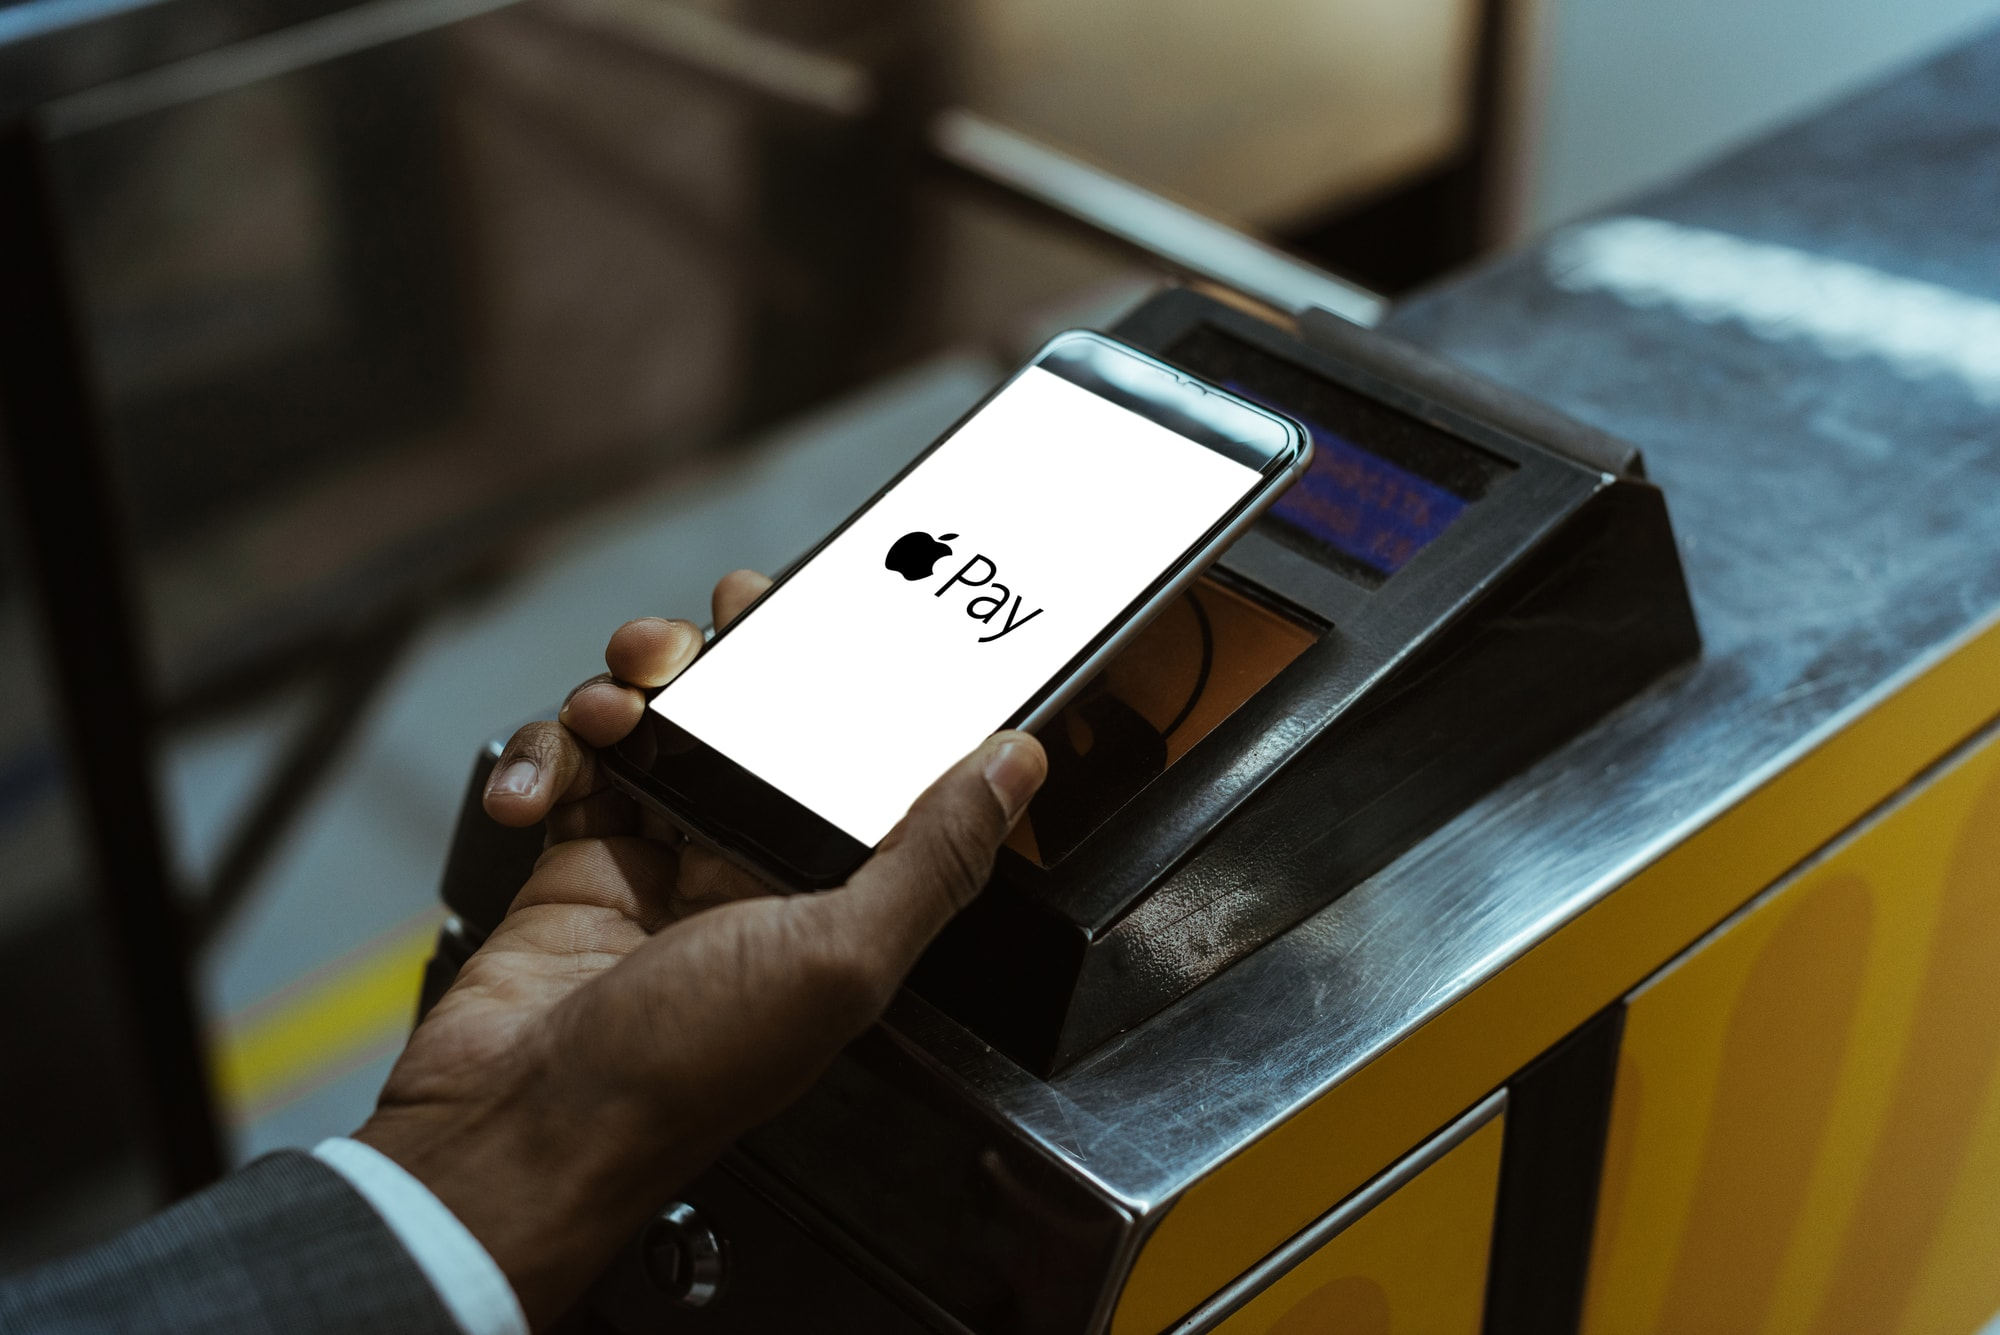 ApplePay example on mobile